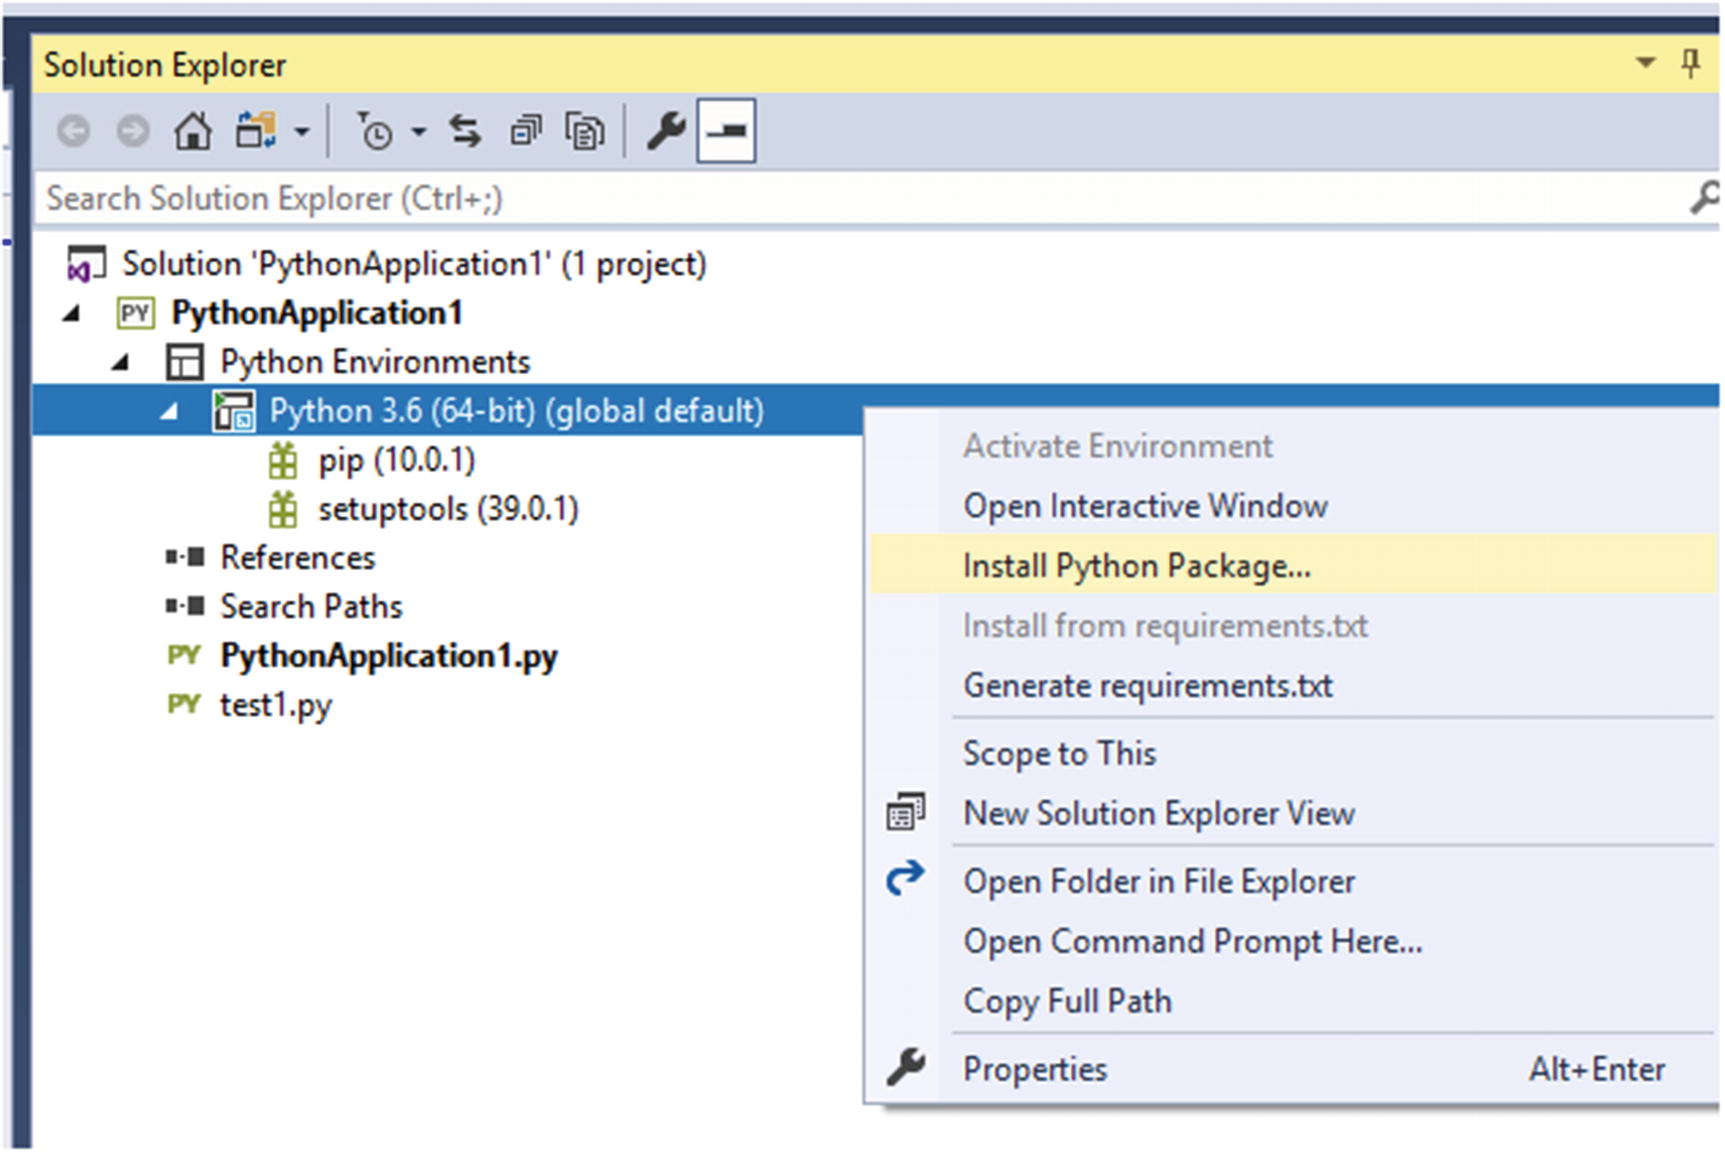 Getting Started with Selenium and Visual Studio | SpringerLink